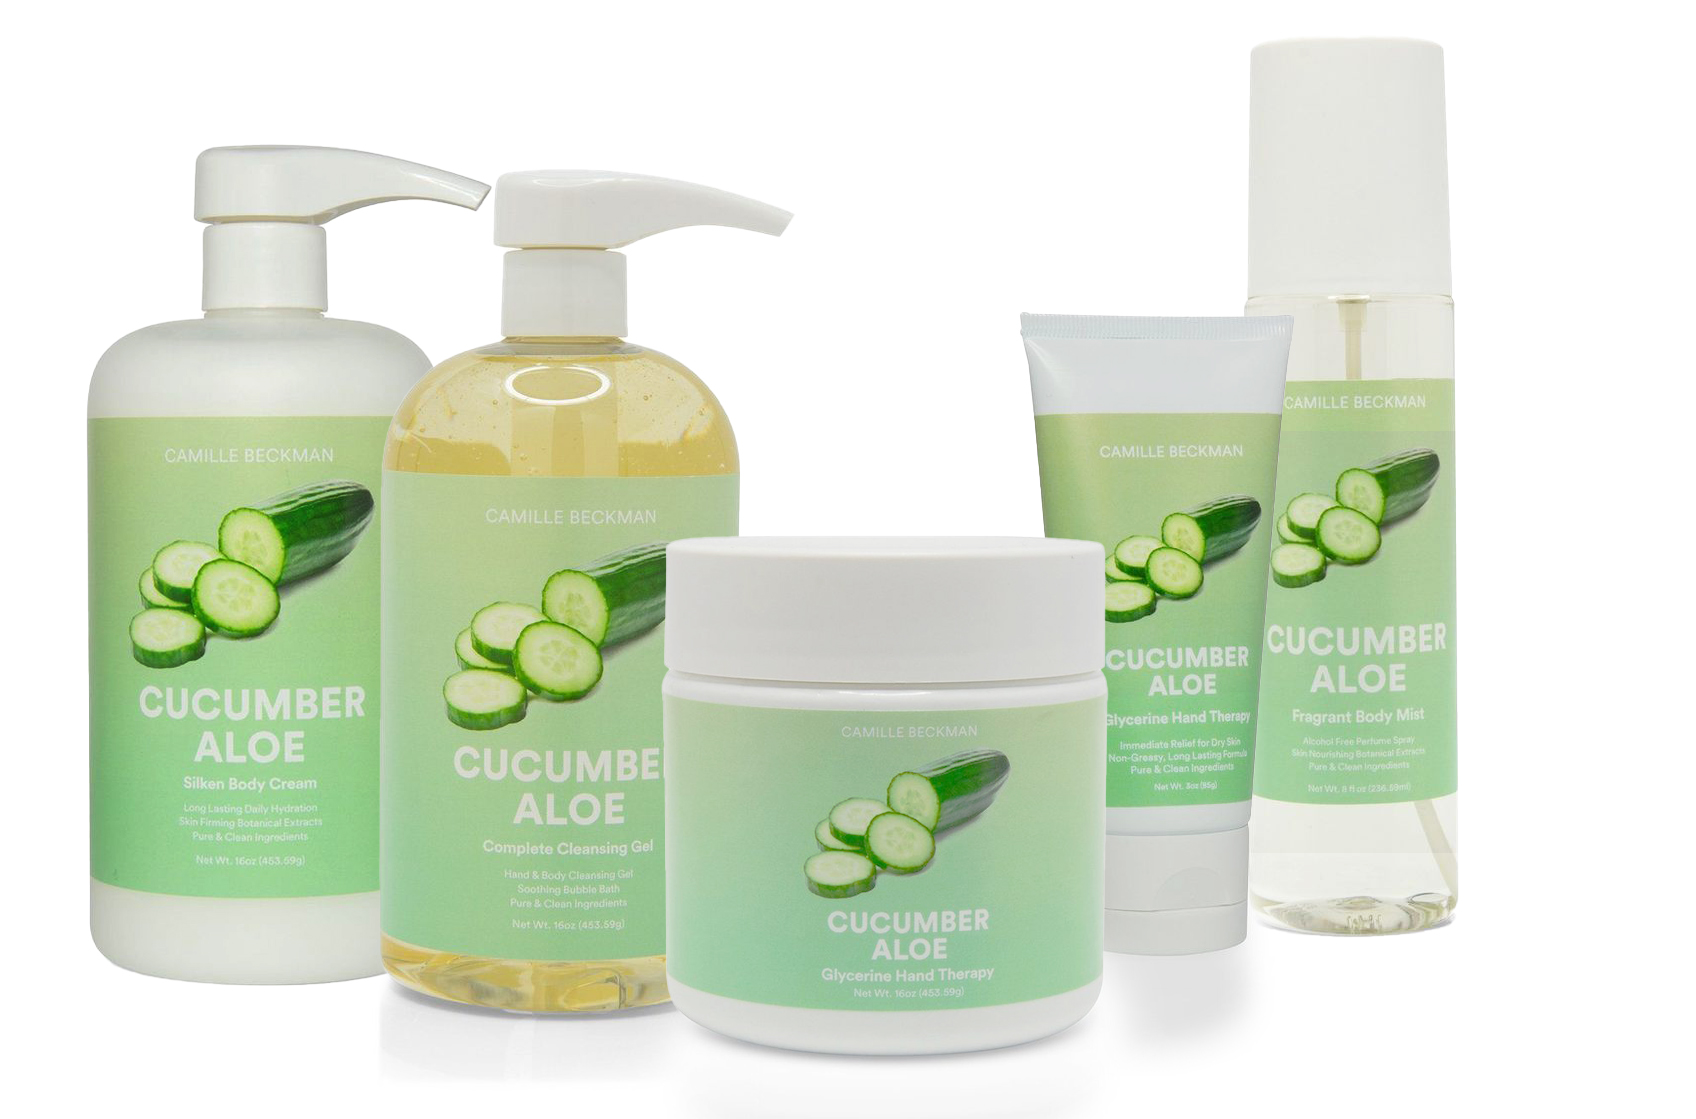 Cucuumber Aloe Products